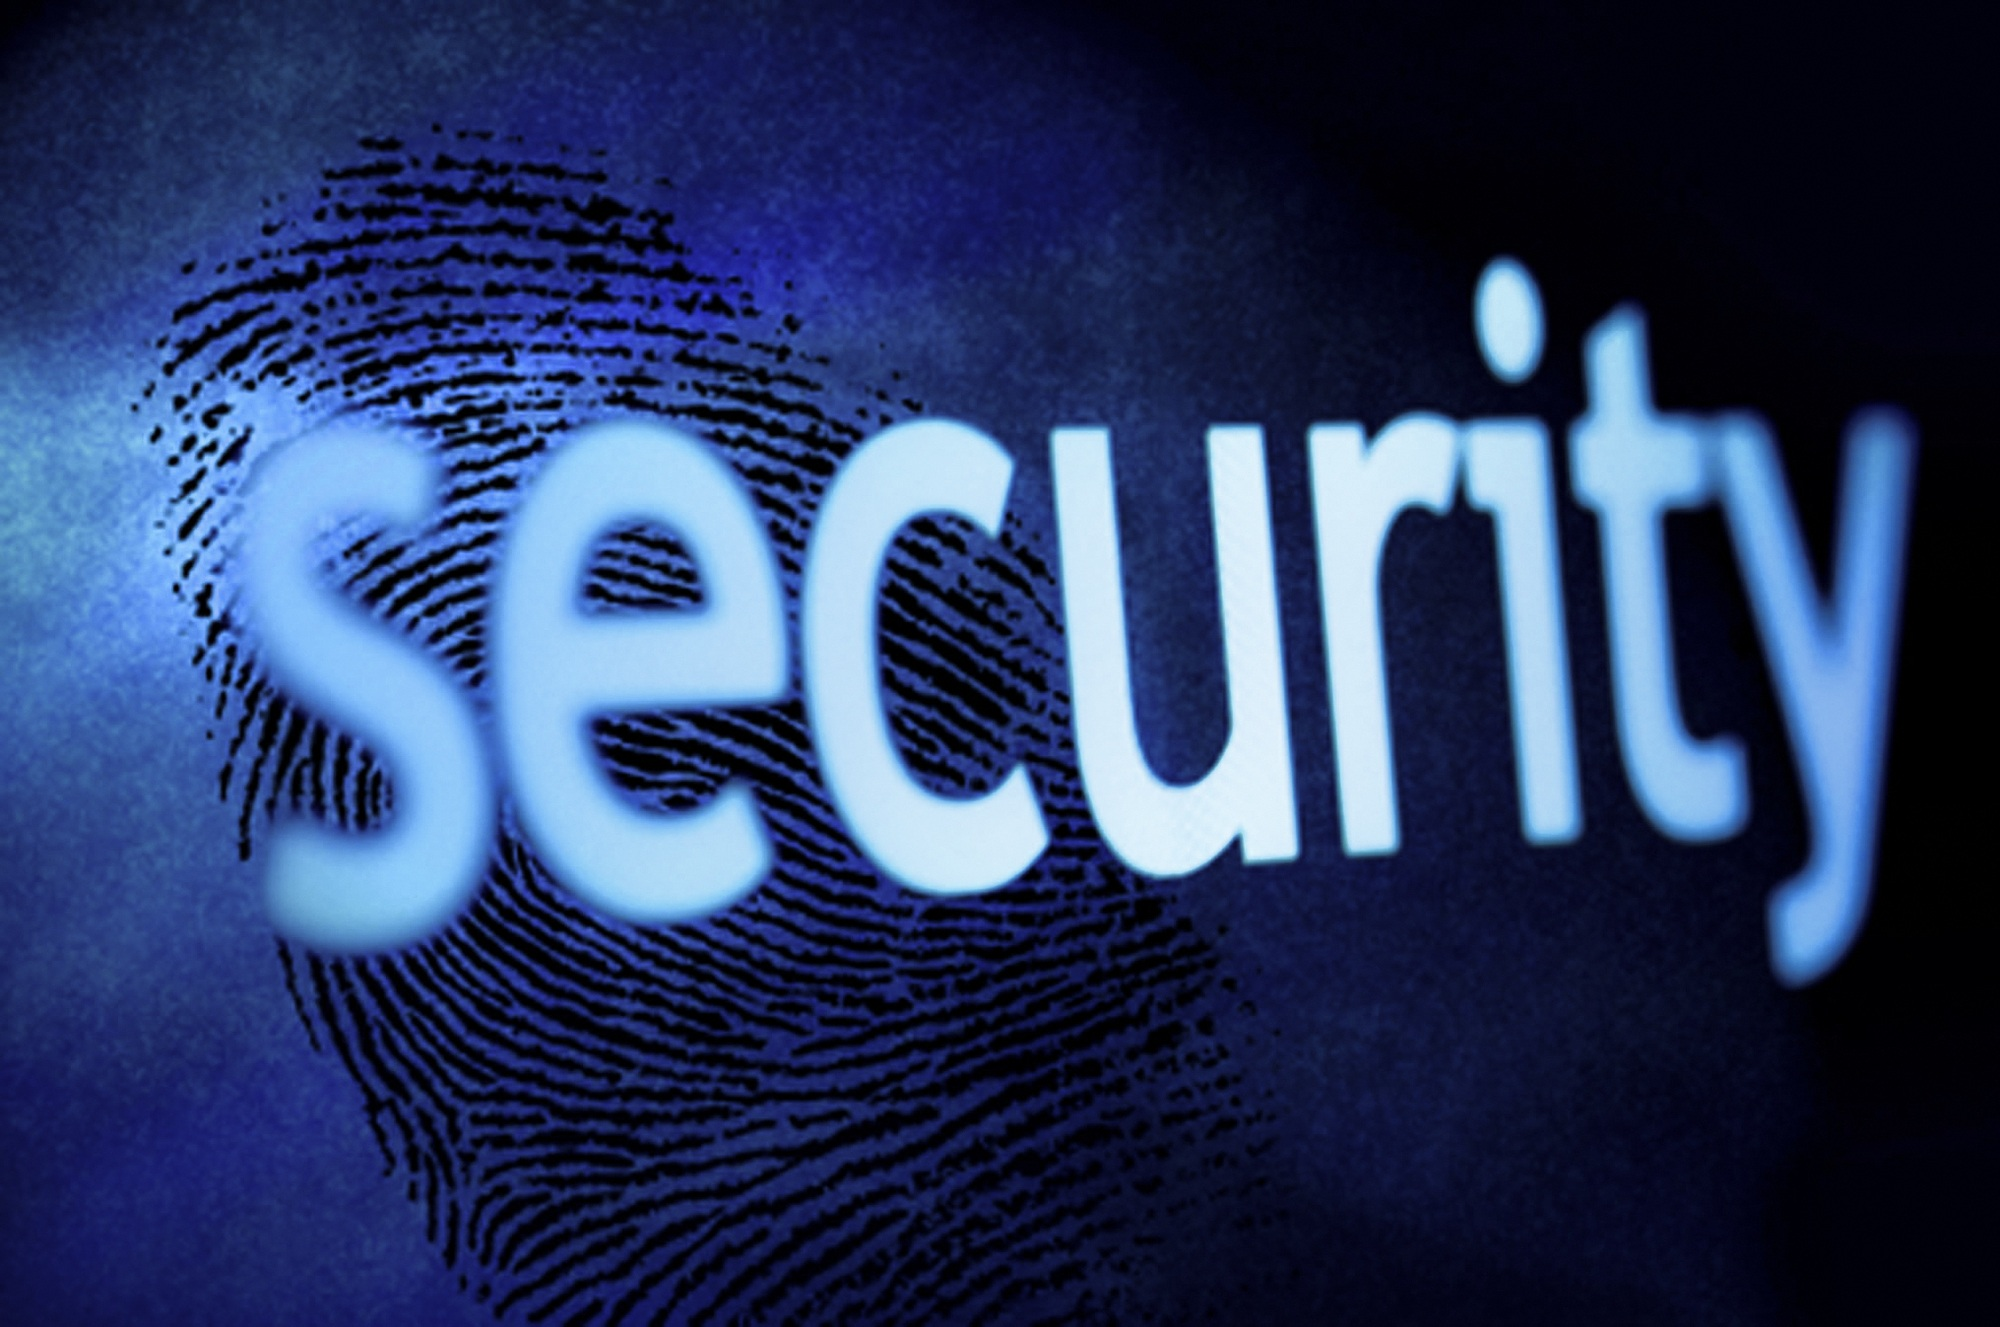 i will test you website if there Security gaps and fix it and make good Securit